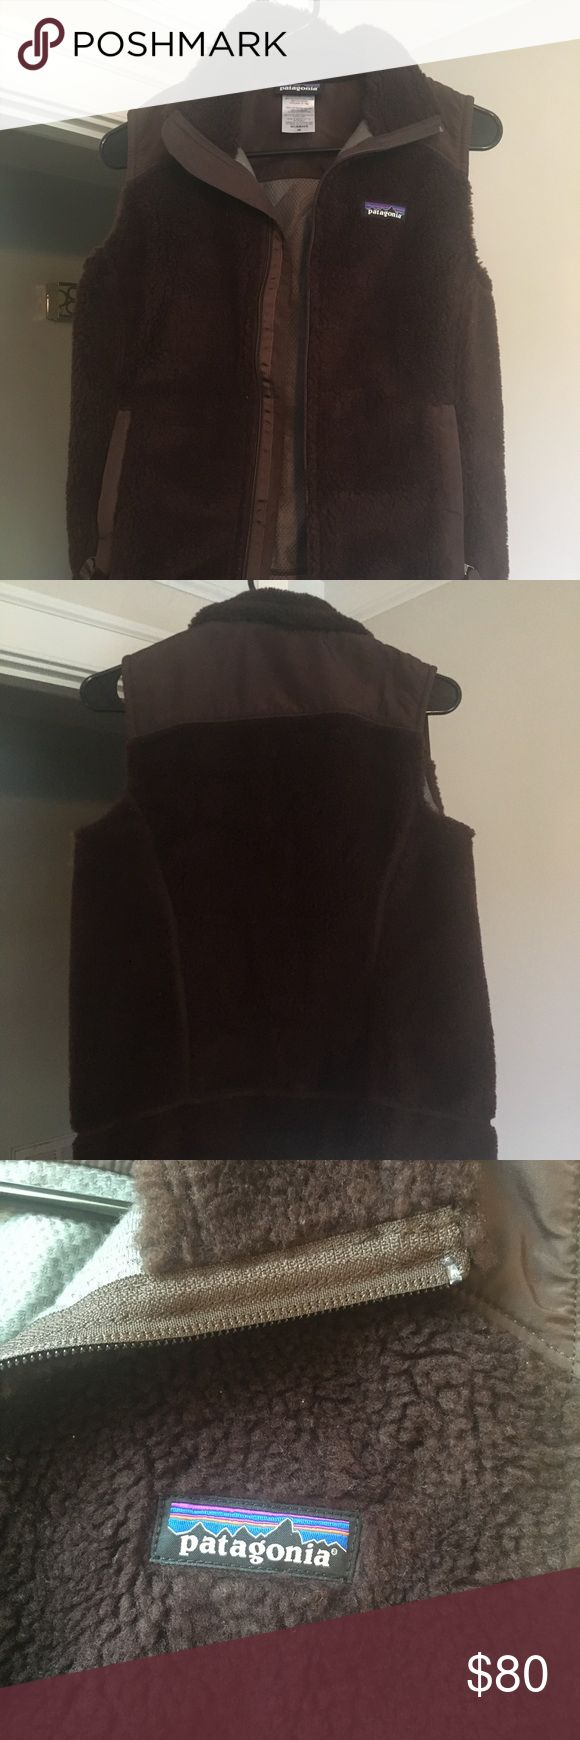 NWOT: W Patagonia Retro-X Vest in Chocolate Brown NEW WITHOUT TAGS: Women's Patagonia Retro-X vest in chocolate brown. Size Medium. Never worn. Retails for 179$ No trades or returns. Patagonia Jackets & Coats Vests